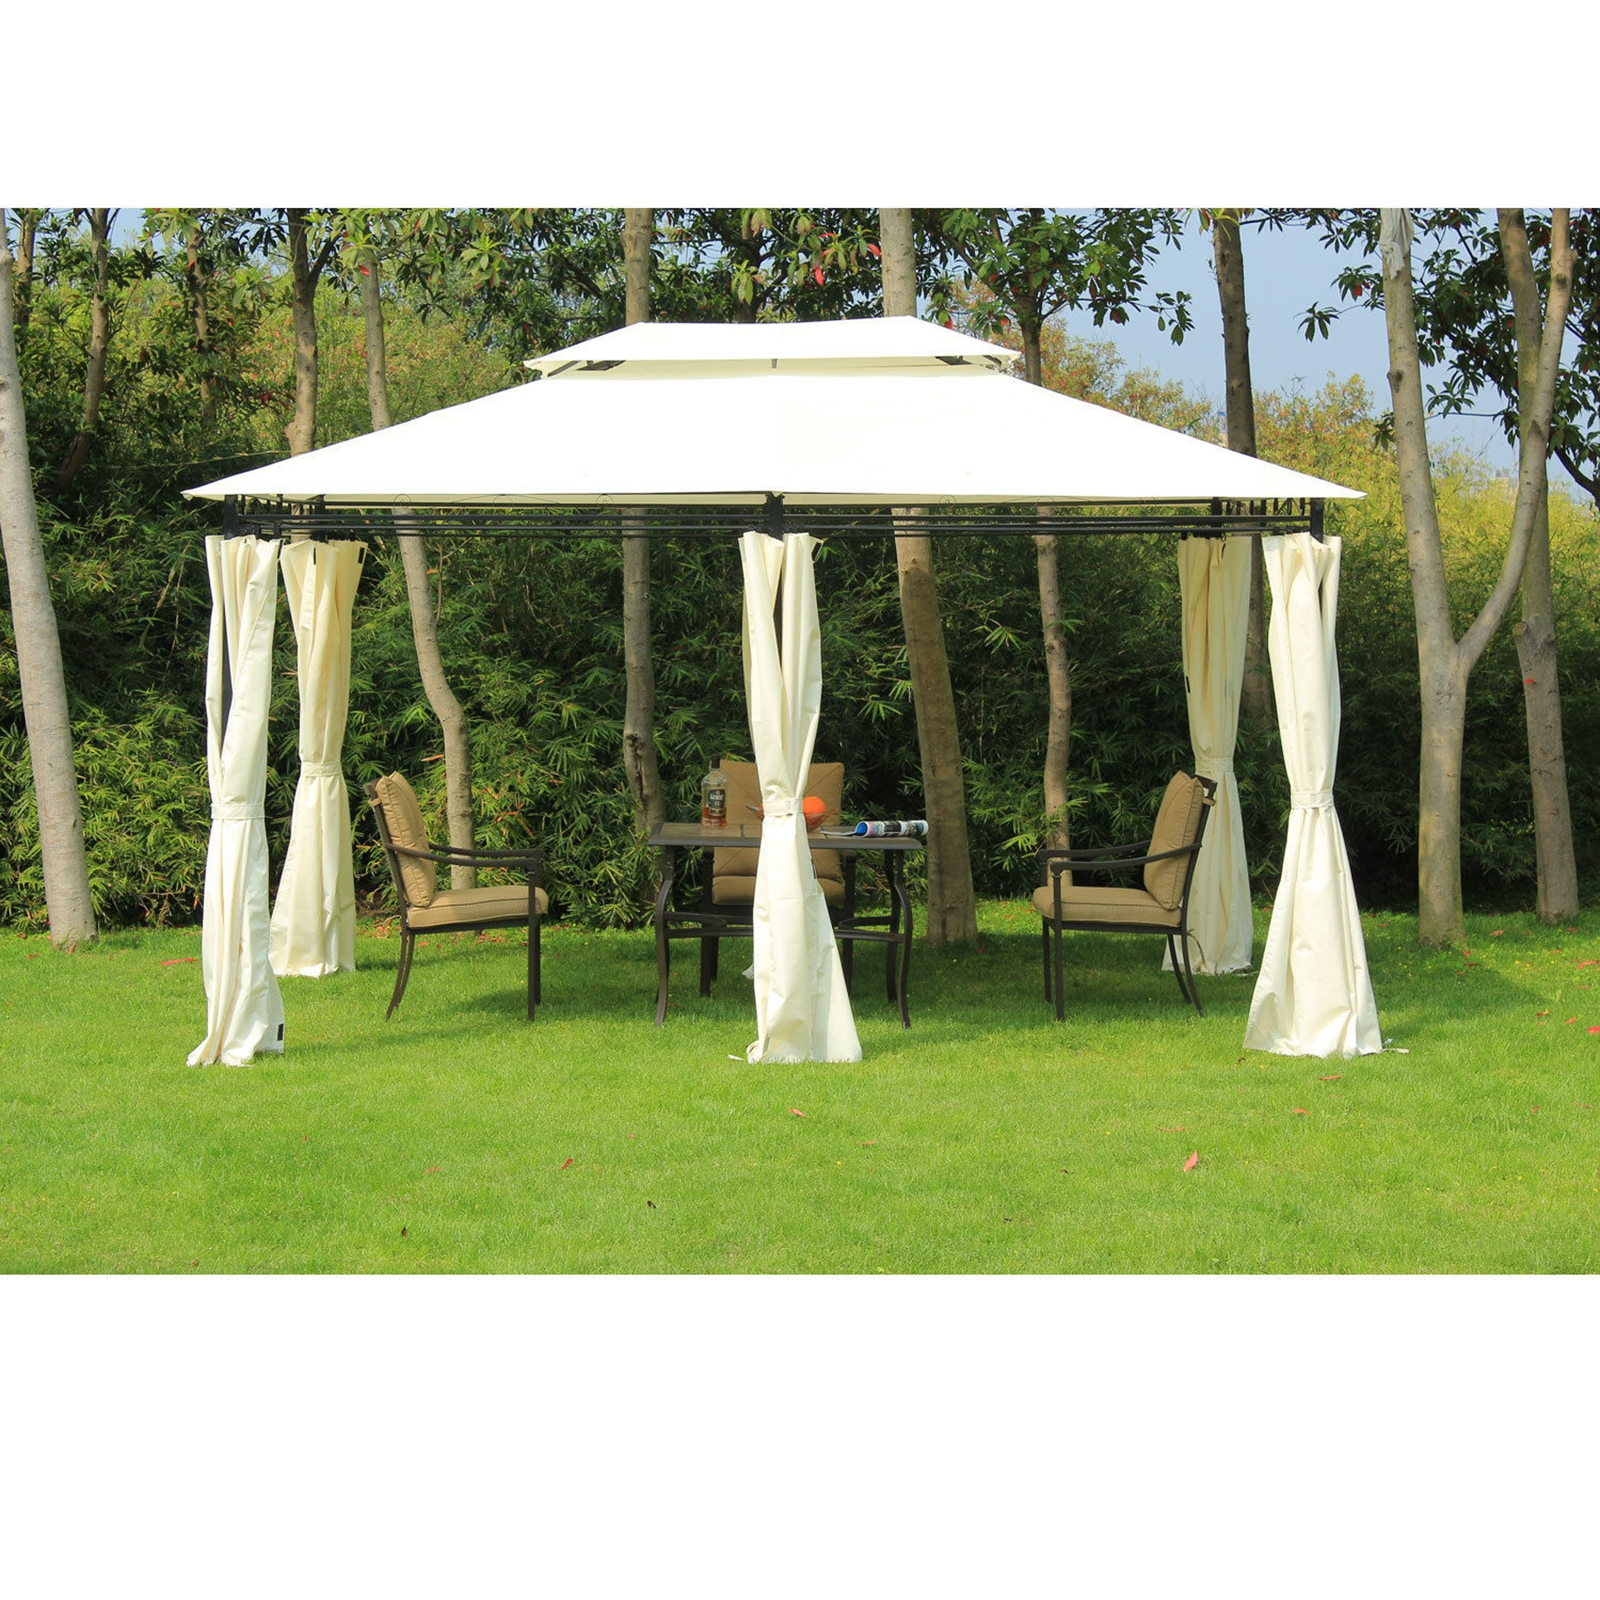 foxhunter 3m x 4m x garden pavilion gazebo shelter beige party tent marquee ebay. Black Bedroom Furniture Sets. Home Design Ideas